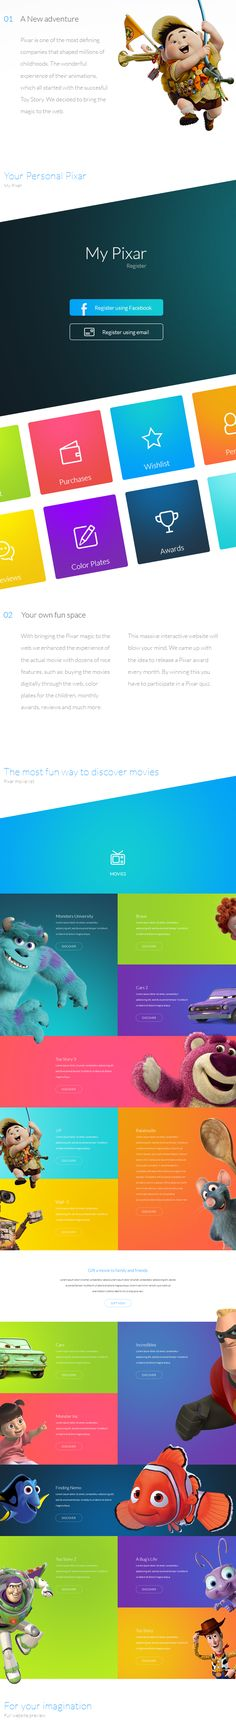 Designers Martin Vlas, Yassine Boutaib and Melissa Kumaresan have replaced Pixar's current look with an interactive, mobile-friendly website presented in bold colors, minimalist icons, and huge visuals, inviting users to explore various sections that showcase information and clips about Pixar's movies and history.